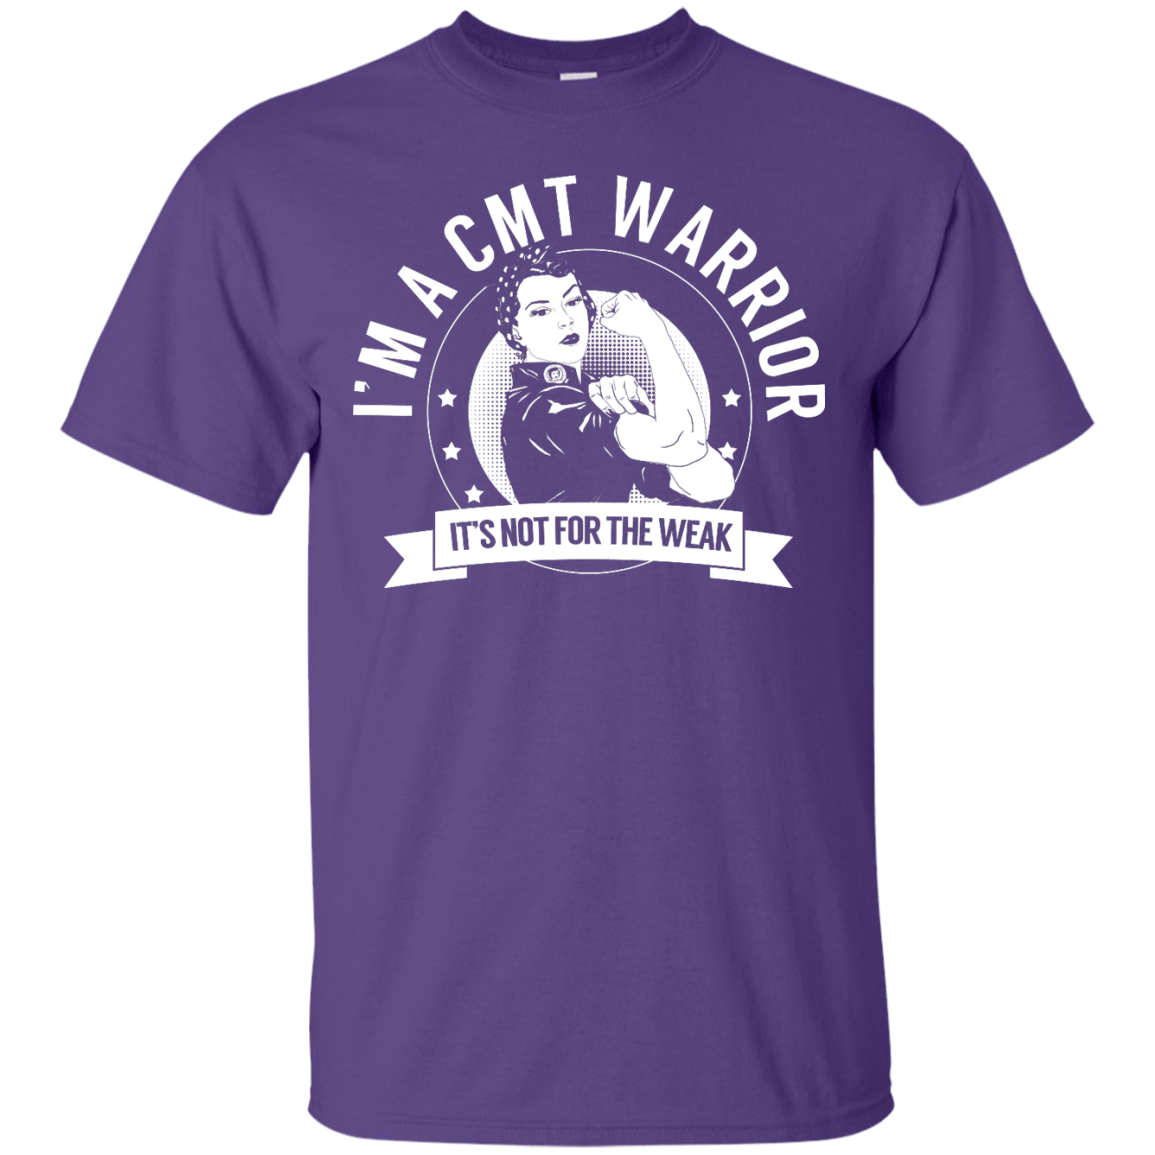 Charcot-Marie-Tooth Disease- CMT Warrior Not For The Weak Unisex Shirt - The Unchargeables